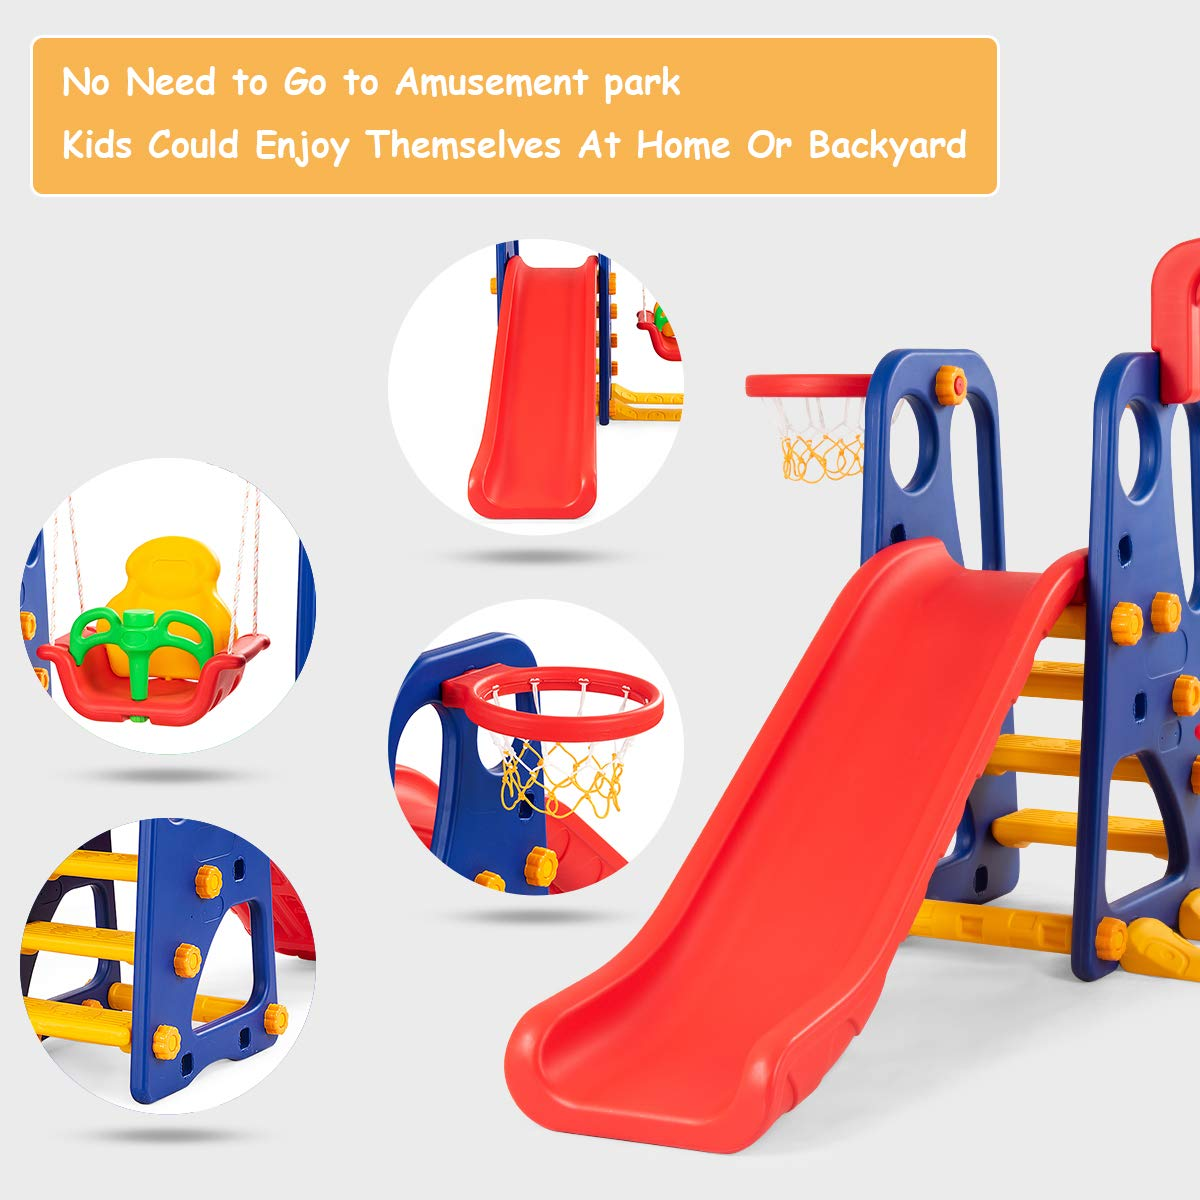 Costzon Toddler Climber and Swing Set, Junior Basketball Hoop Playset for Both Indoors & Backyard (3-in-1 Slide & Swing Set) by Costzon (Image #6)